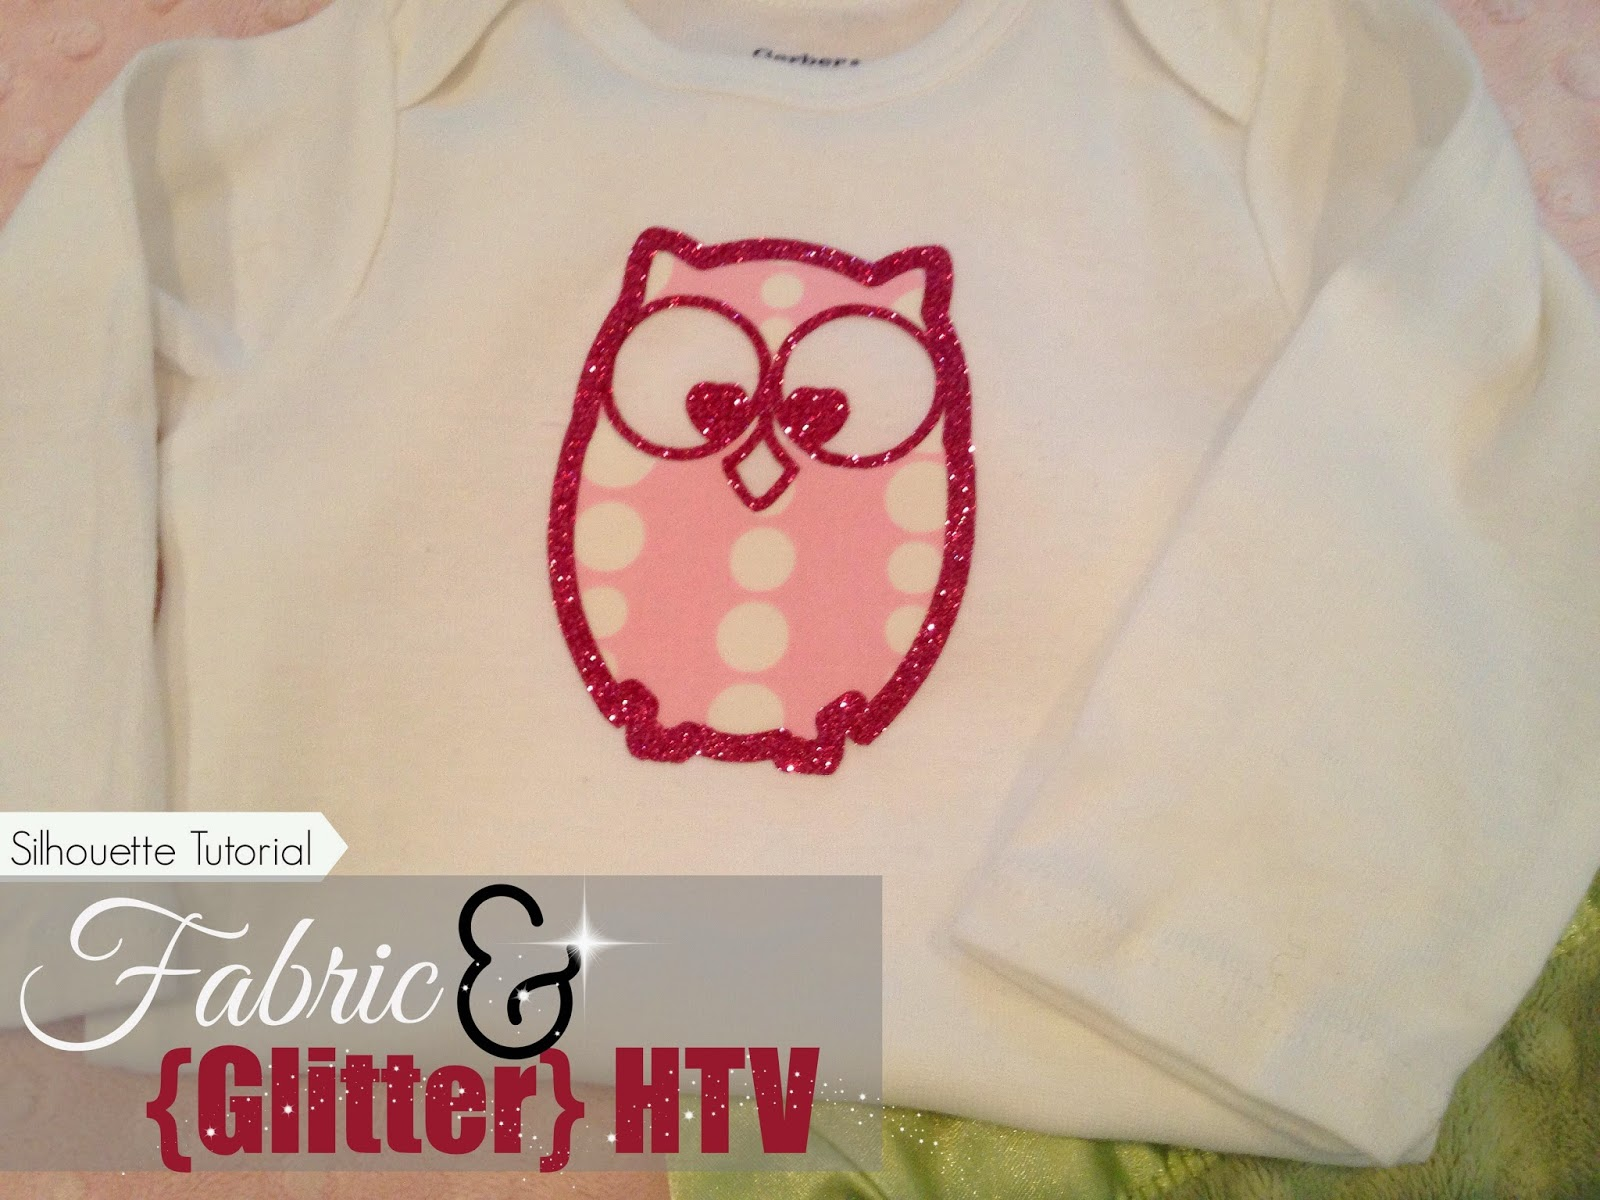 Fabric And Glitter Htv Silhouette Tutorial Silhouette